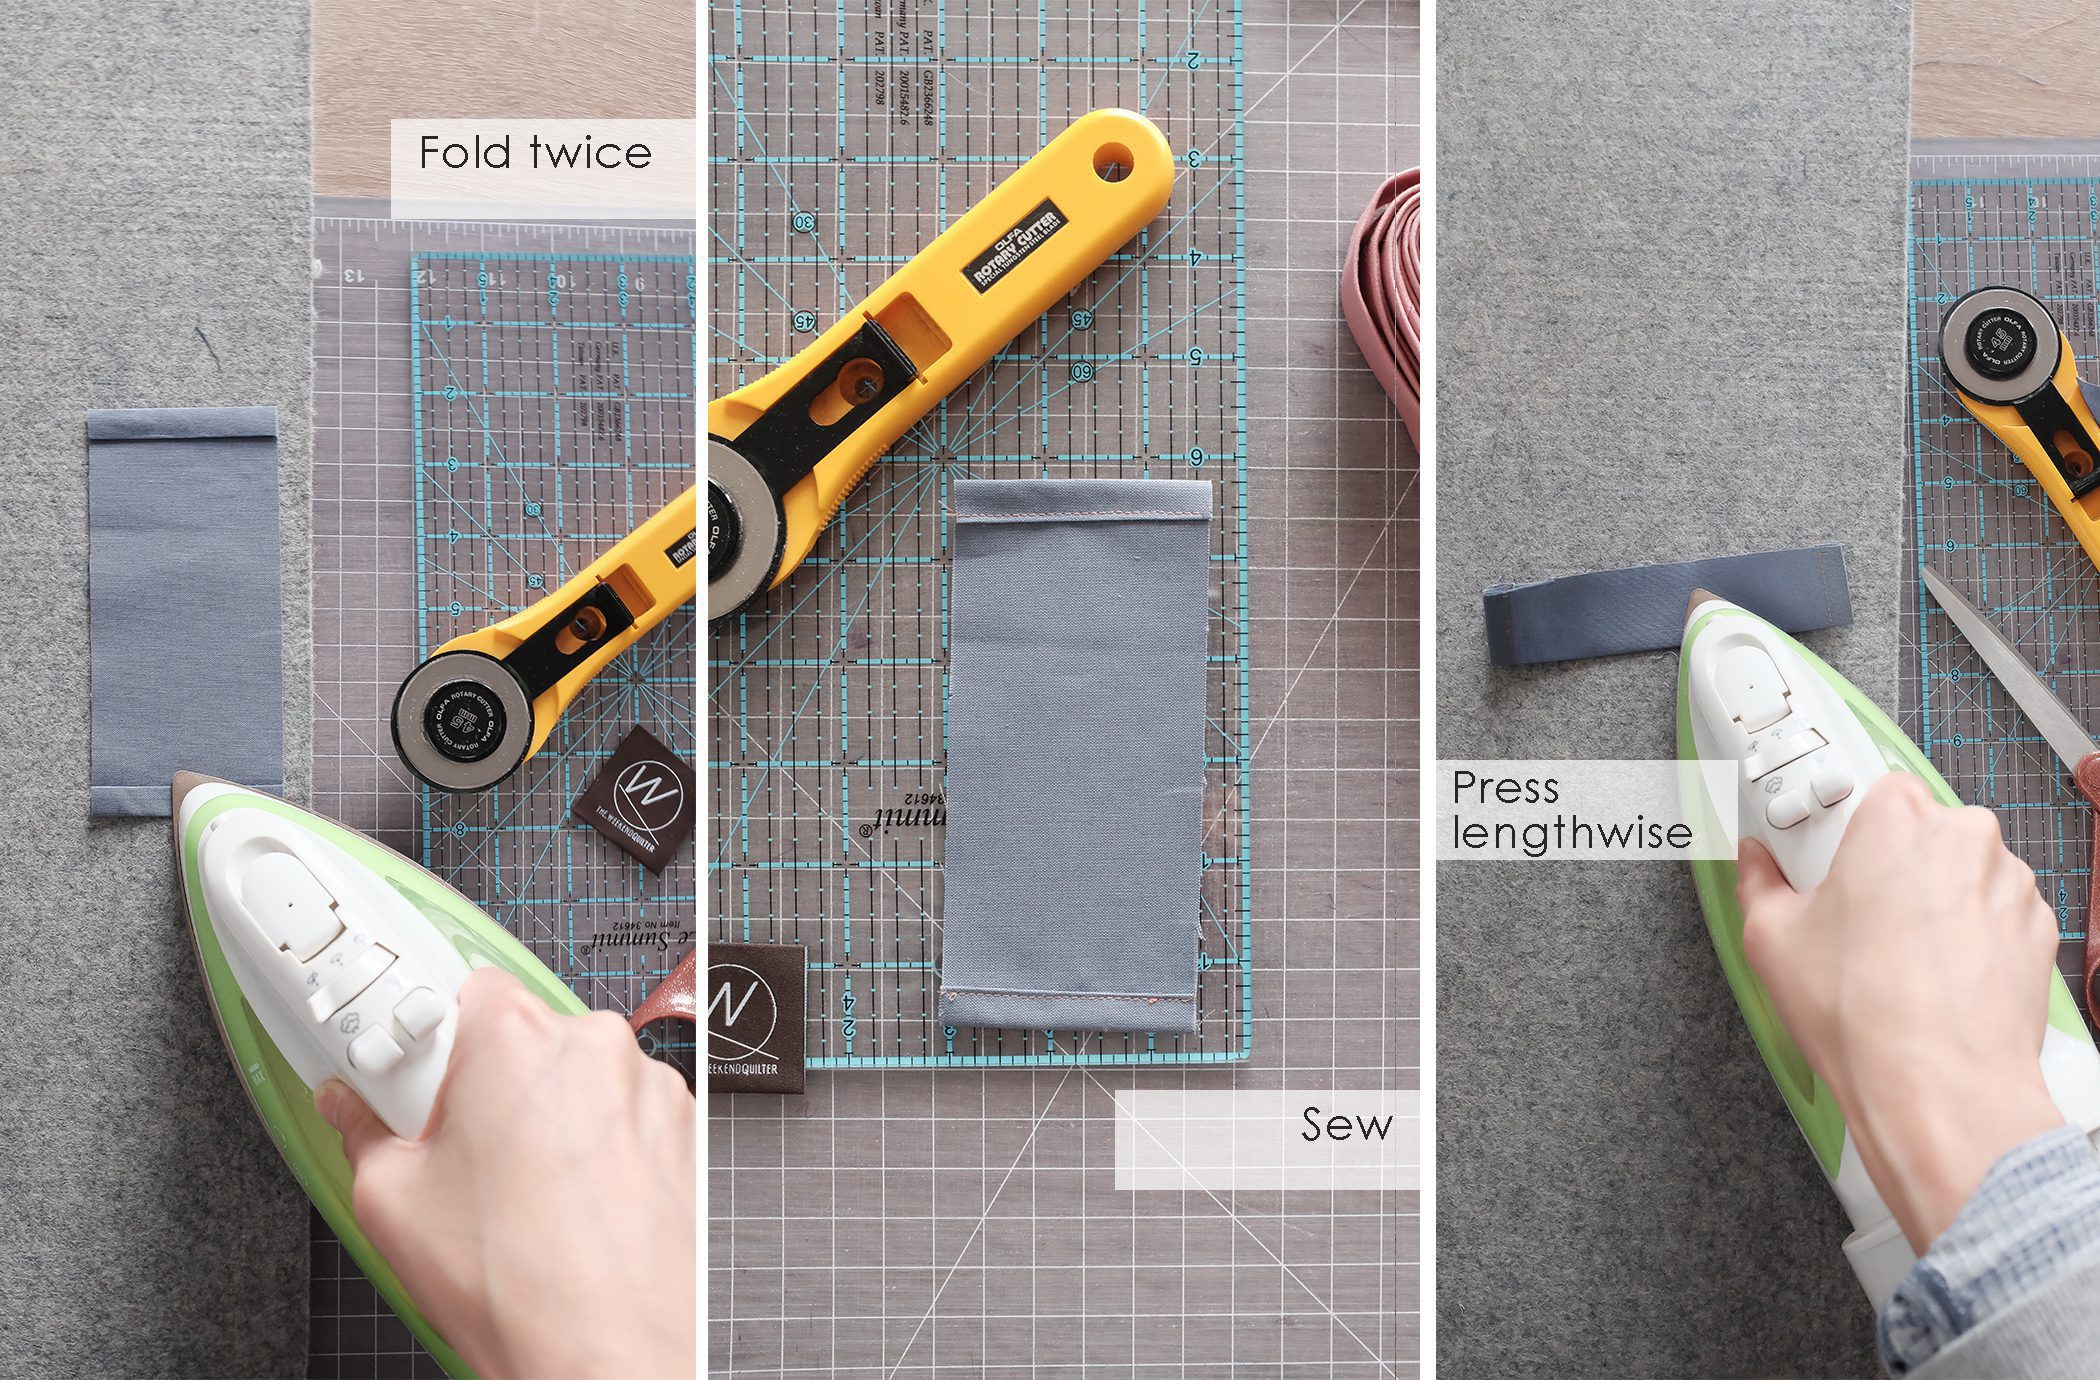 steps to ironing and sewing fabric to make a quilt wall hanging